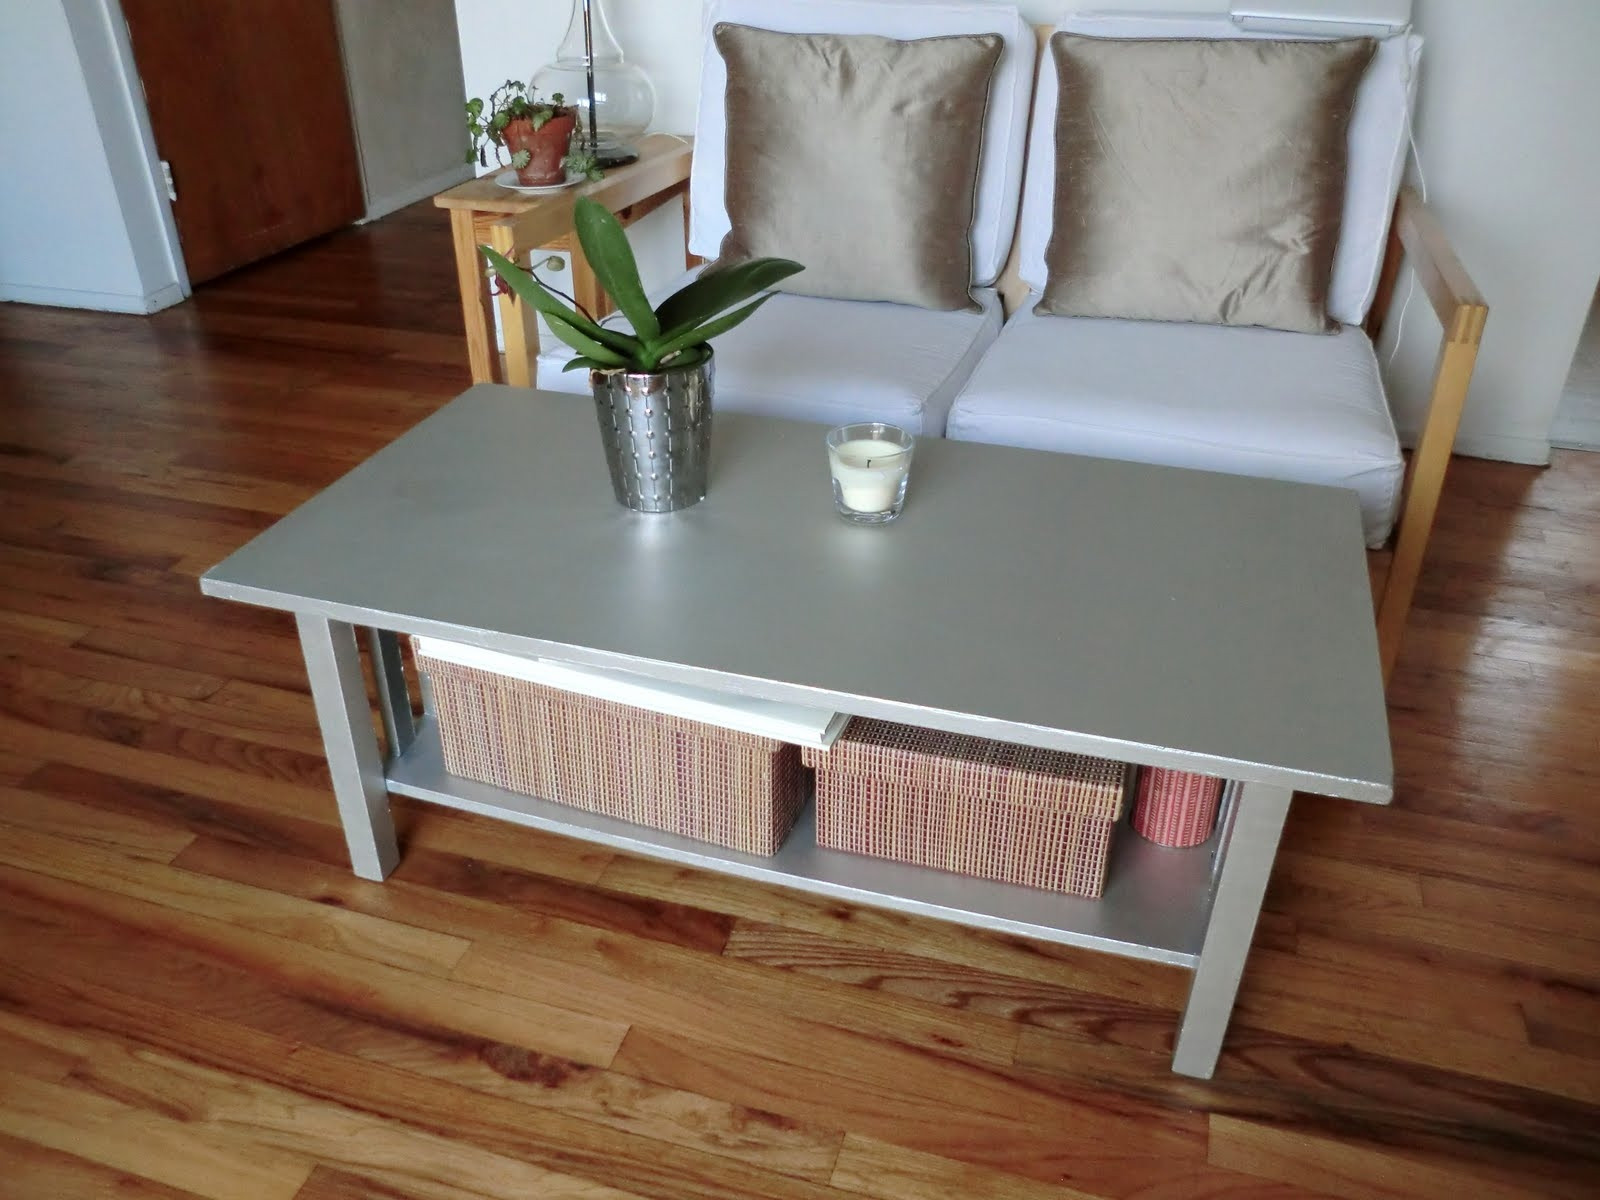 Best ideas about Refinishing Coffee Table Ideas . Save or Pin s Refinishing a Coffee Table MediasUpload Now.